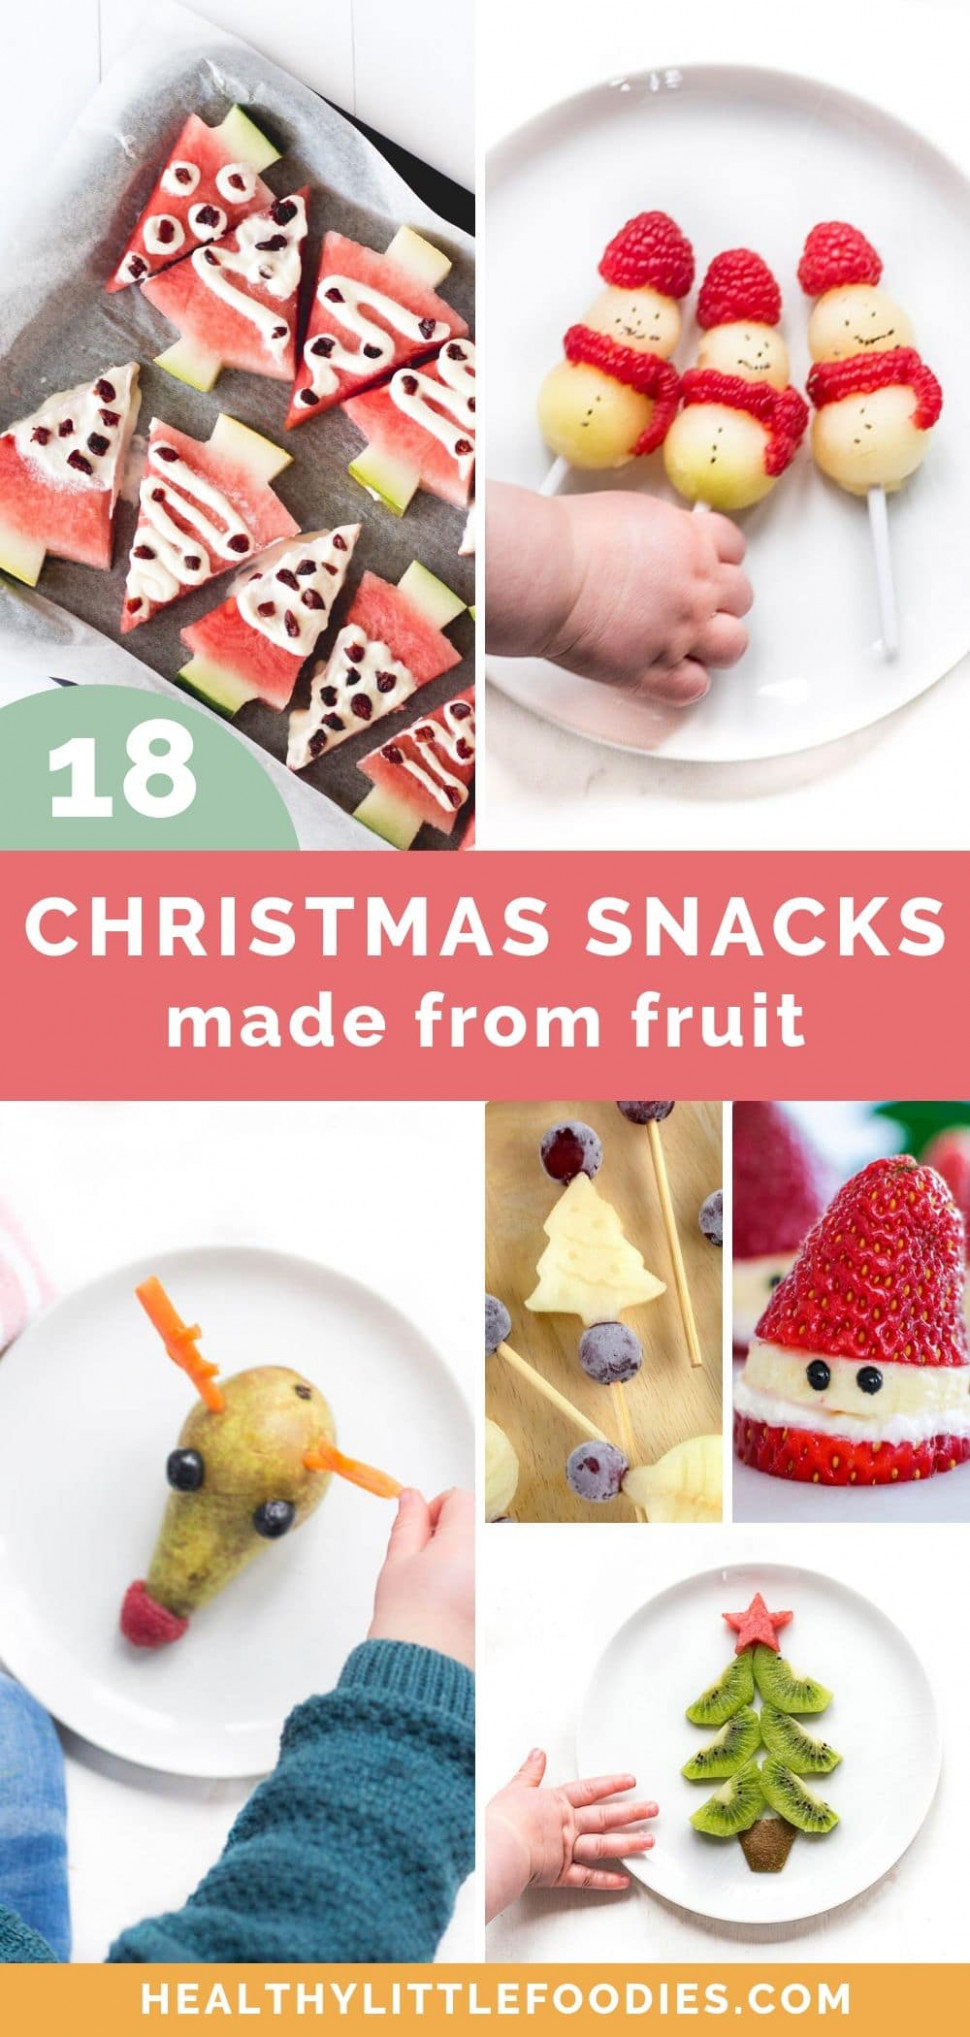 15 Healthy Christmas Snacks for Kids - Healthy Litttle Foodies - healthy xmas baking recipes